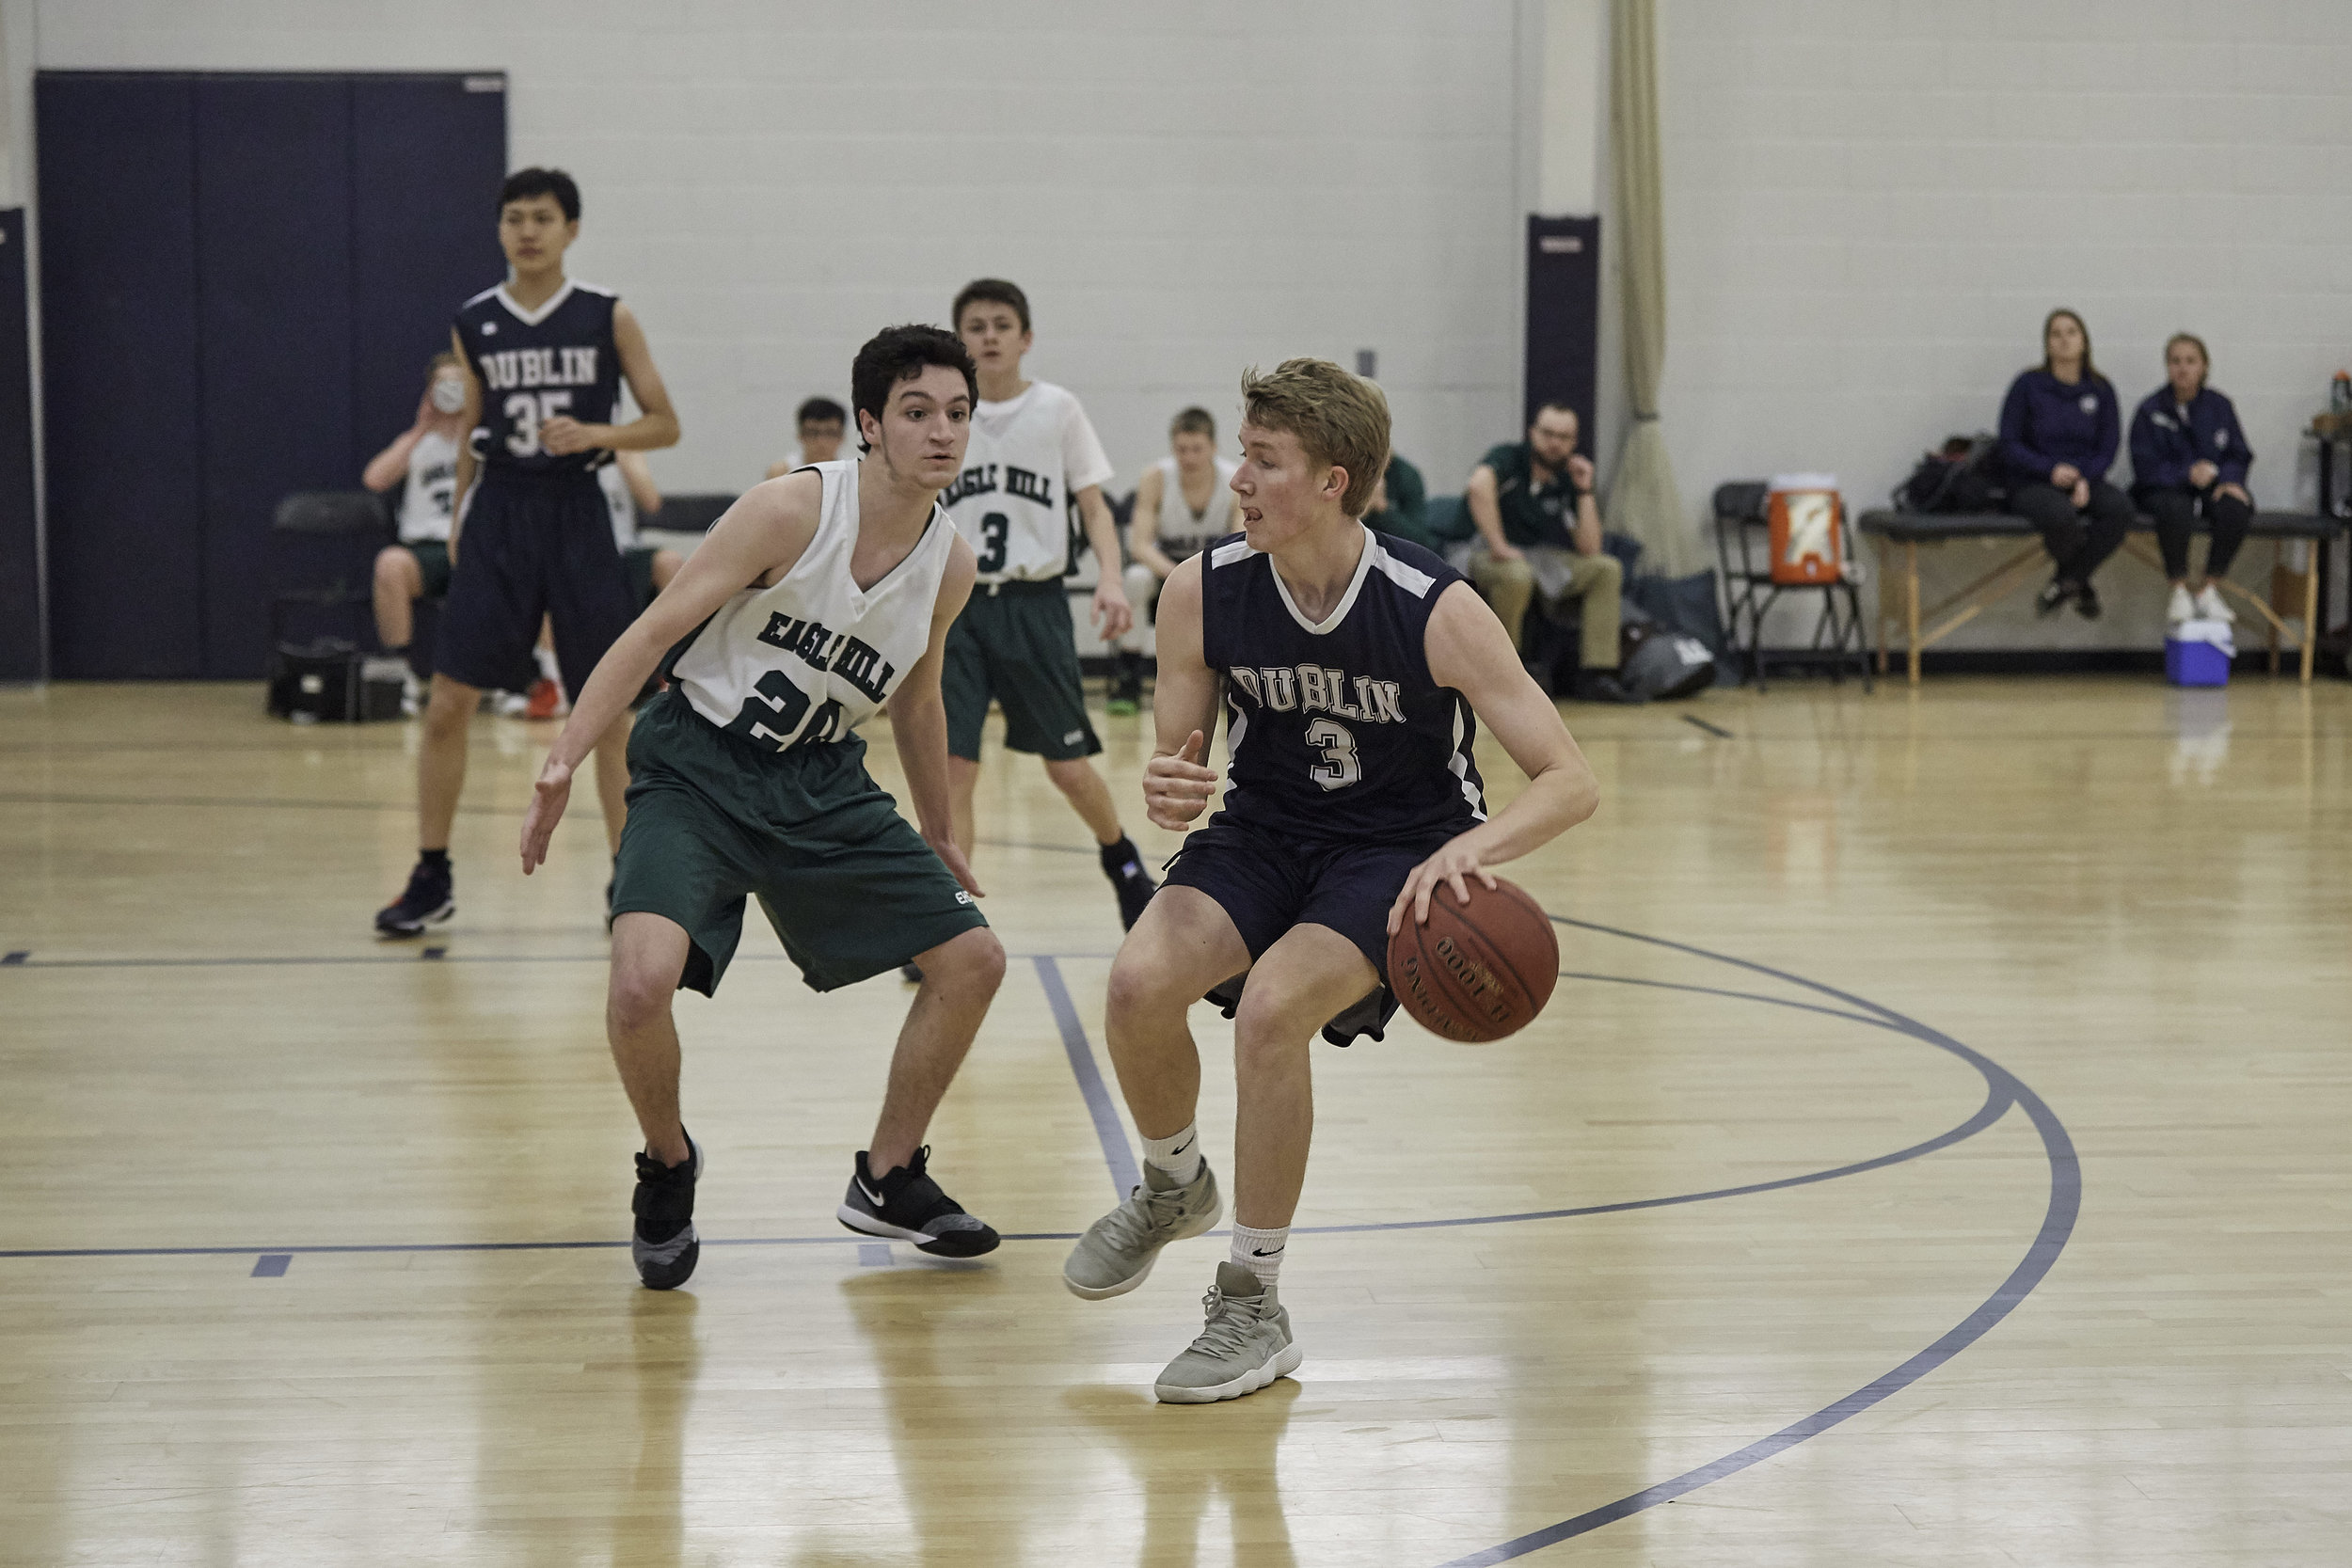 Boys Varsity Basketball vs. Eagle Hill School JV at RVAL Tournament - February 11, 2019 - 167734.jpg